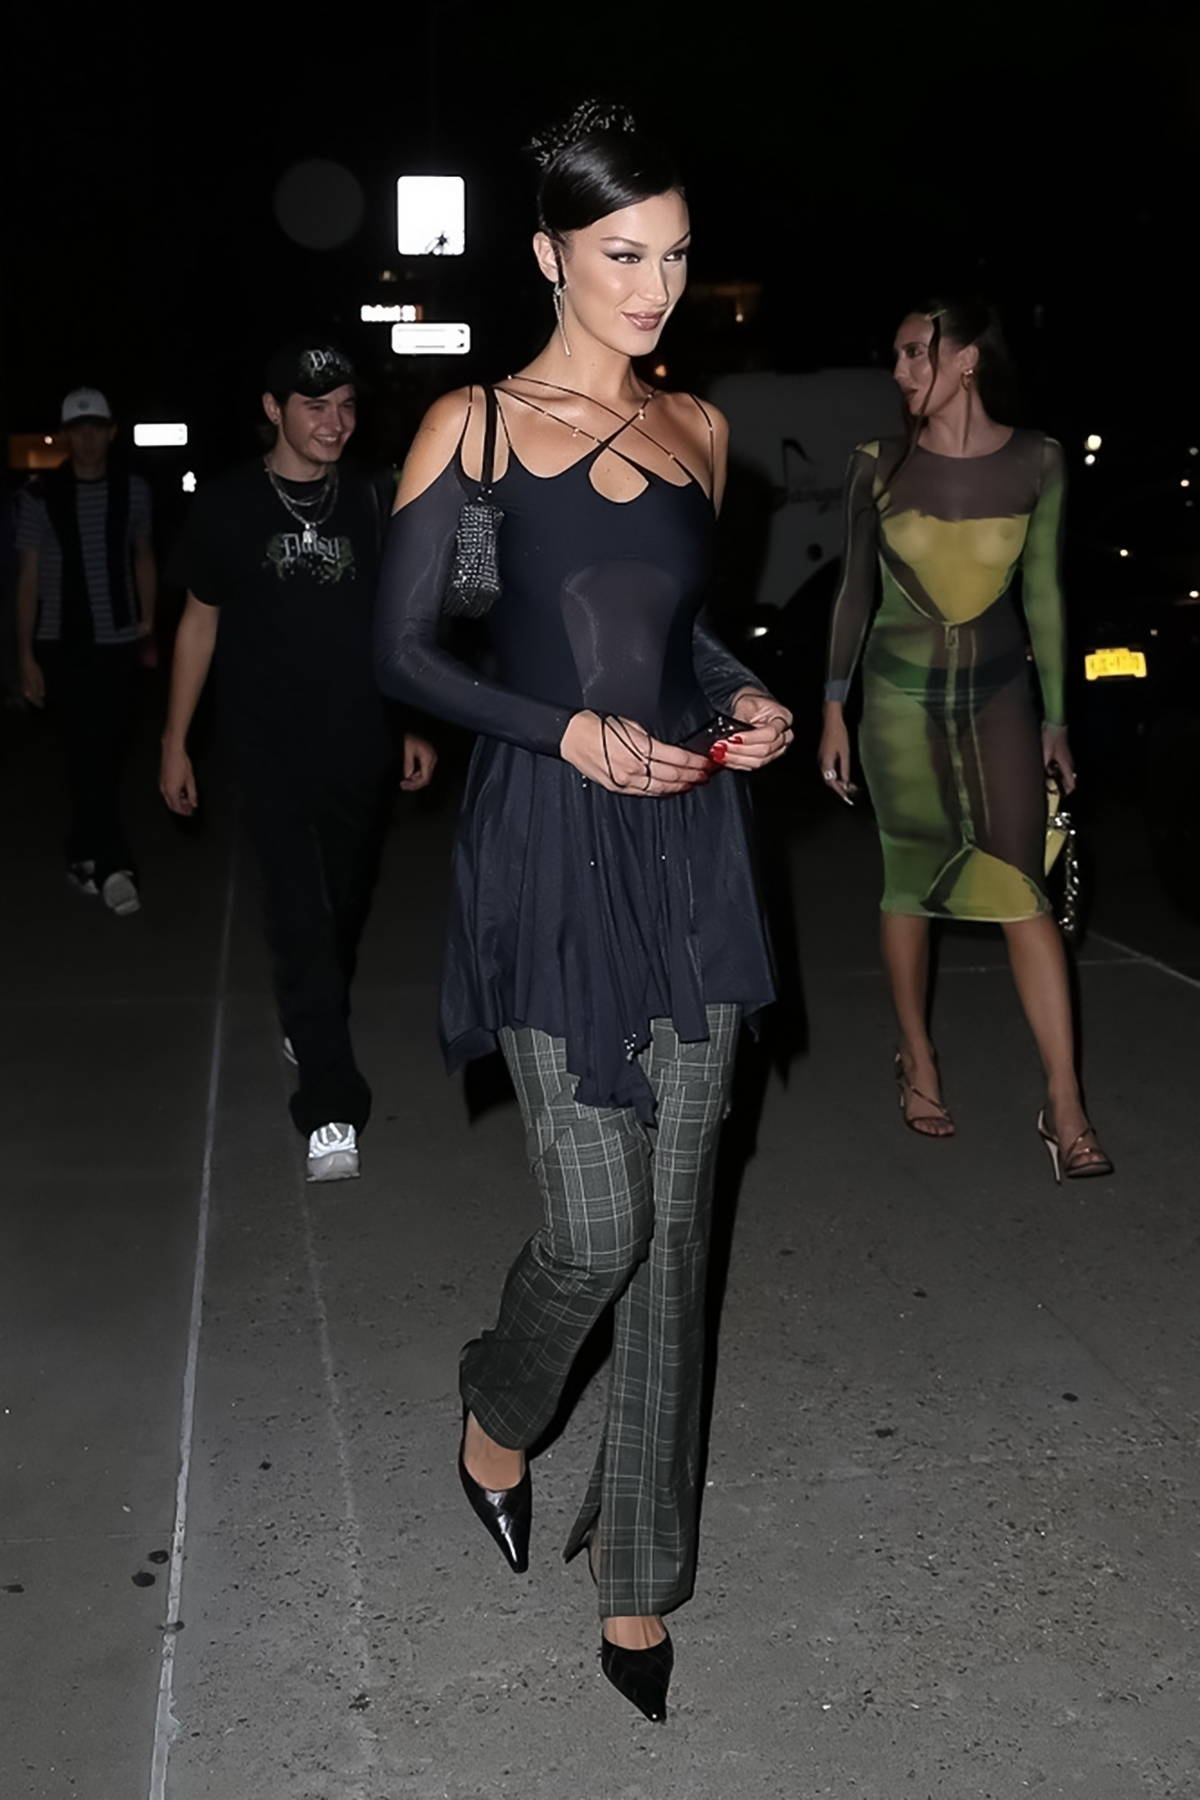 Bella Hadid looks stylish as she heads out for an event during New York Fashion Week at Spring Studios in New York City